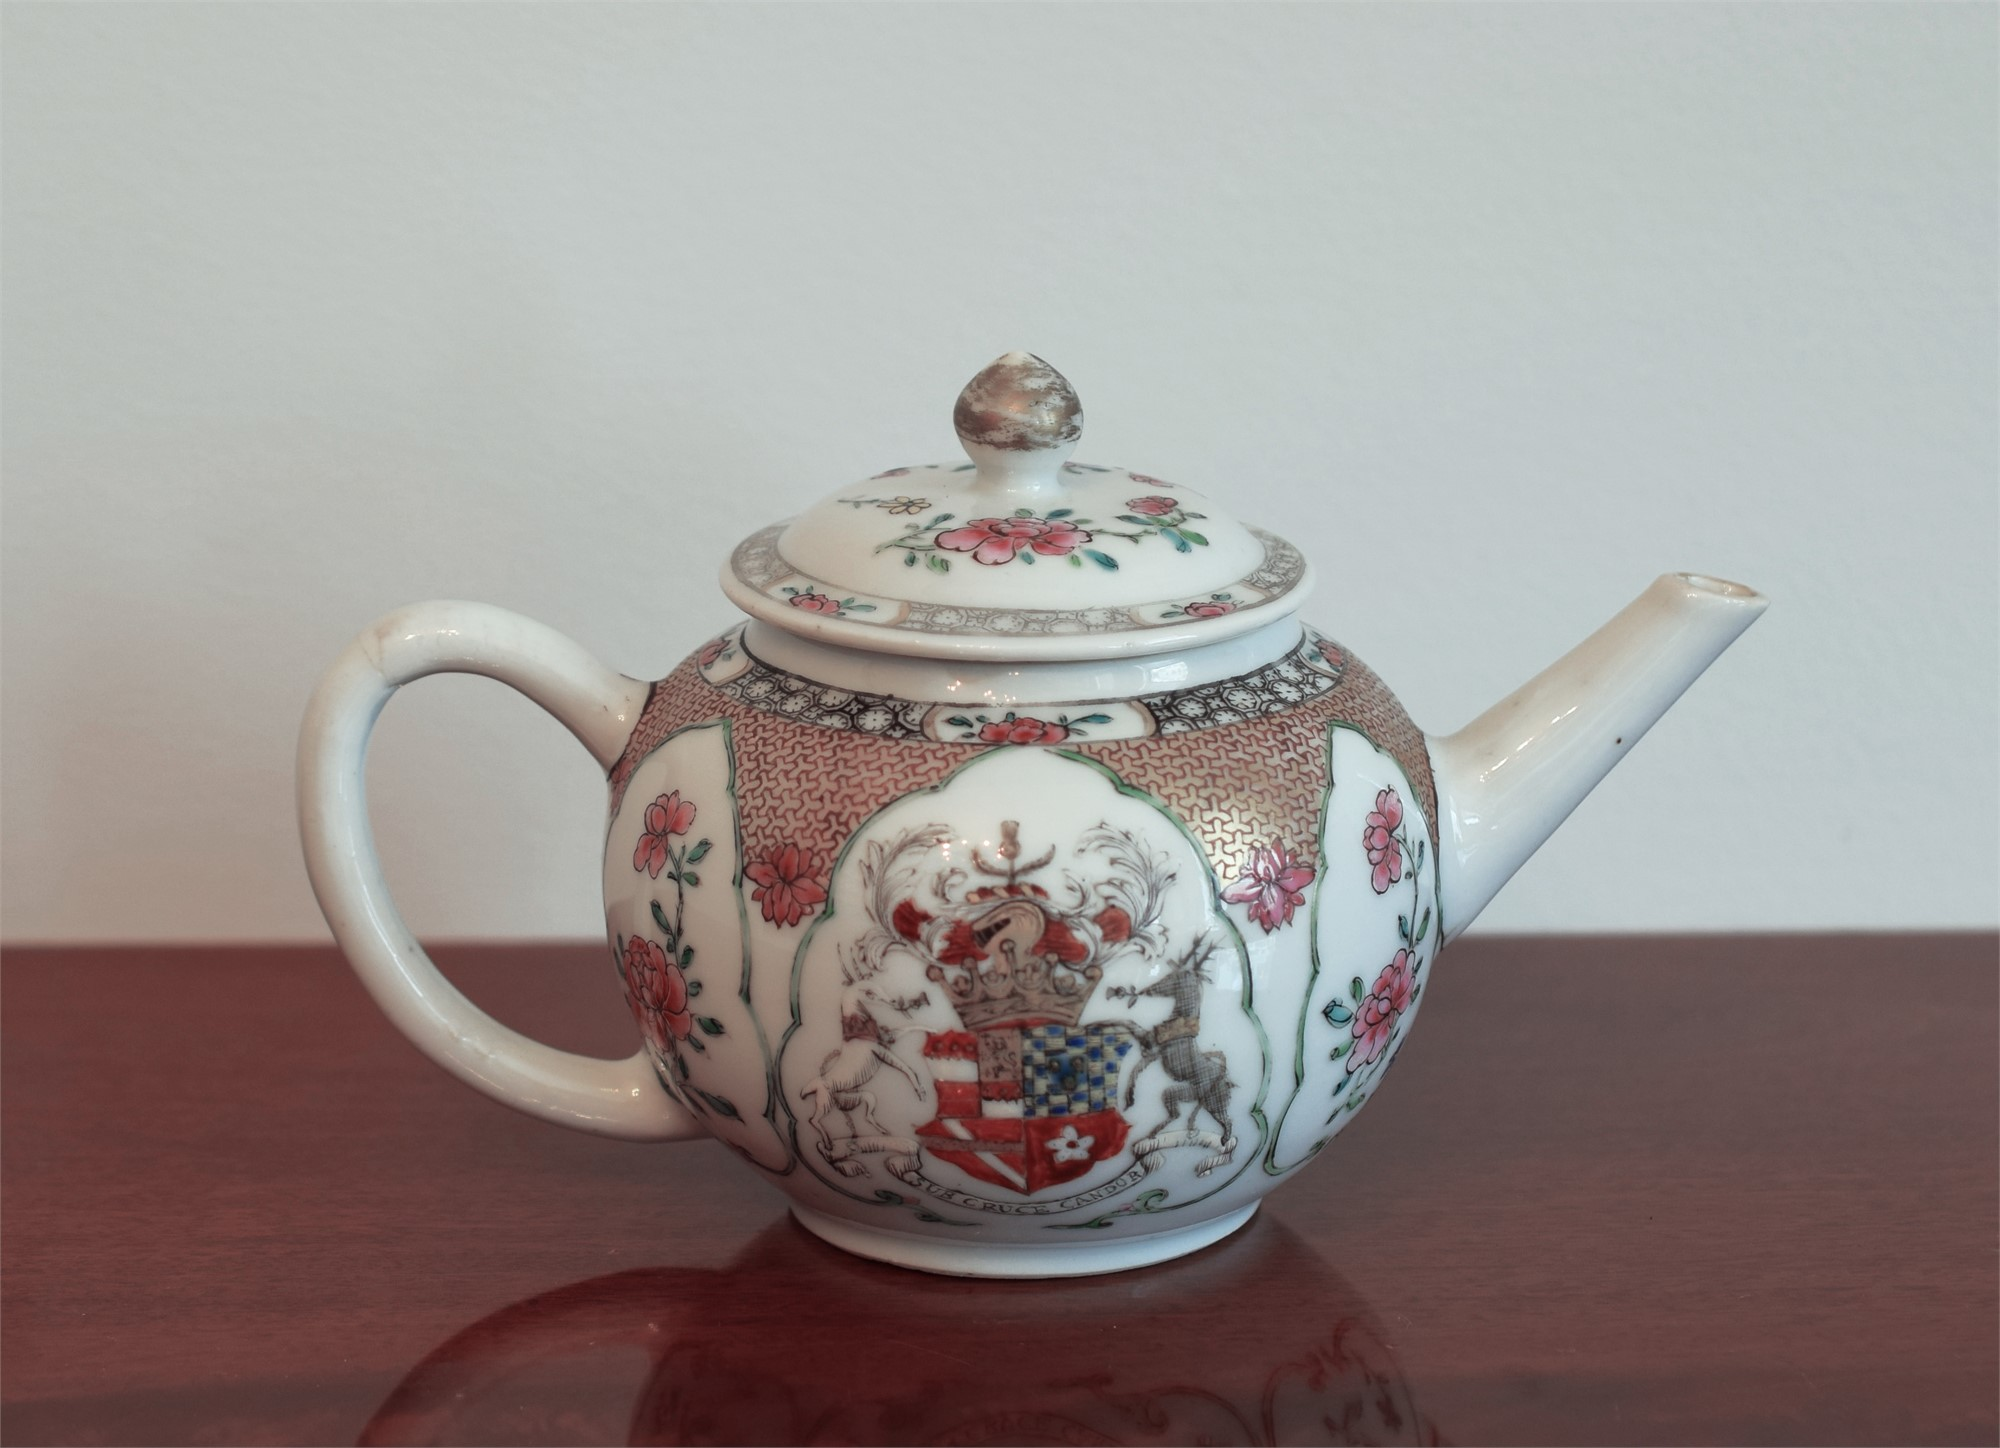 A TEAPOT AND COVER WITH ARMS OF PERCEVAL QUARTERING WARREN